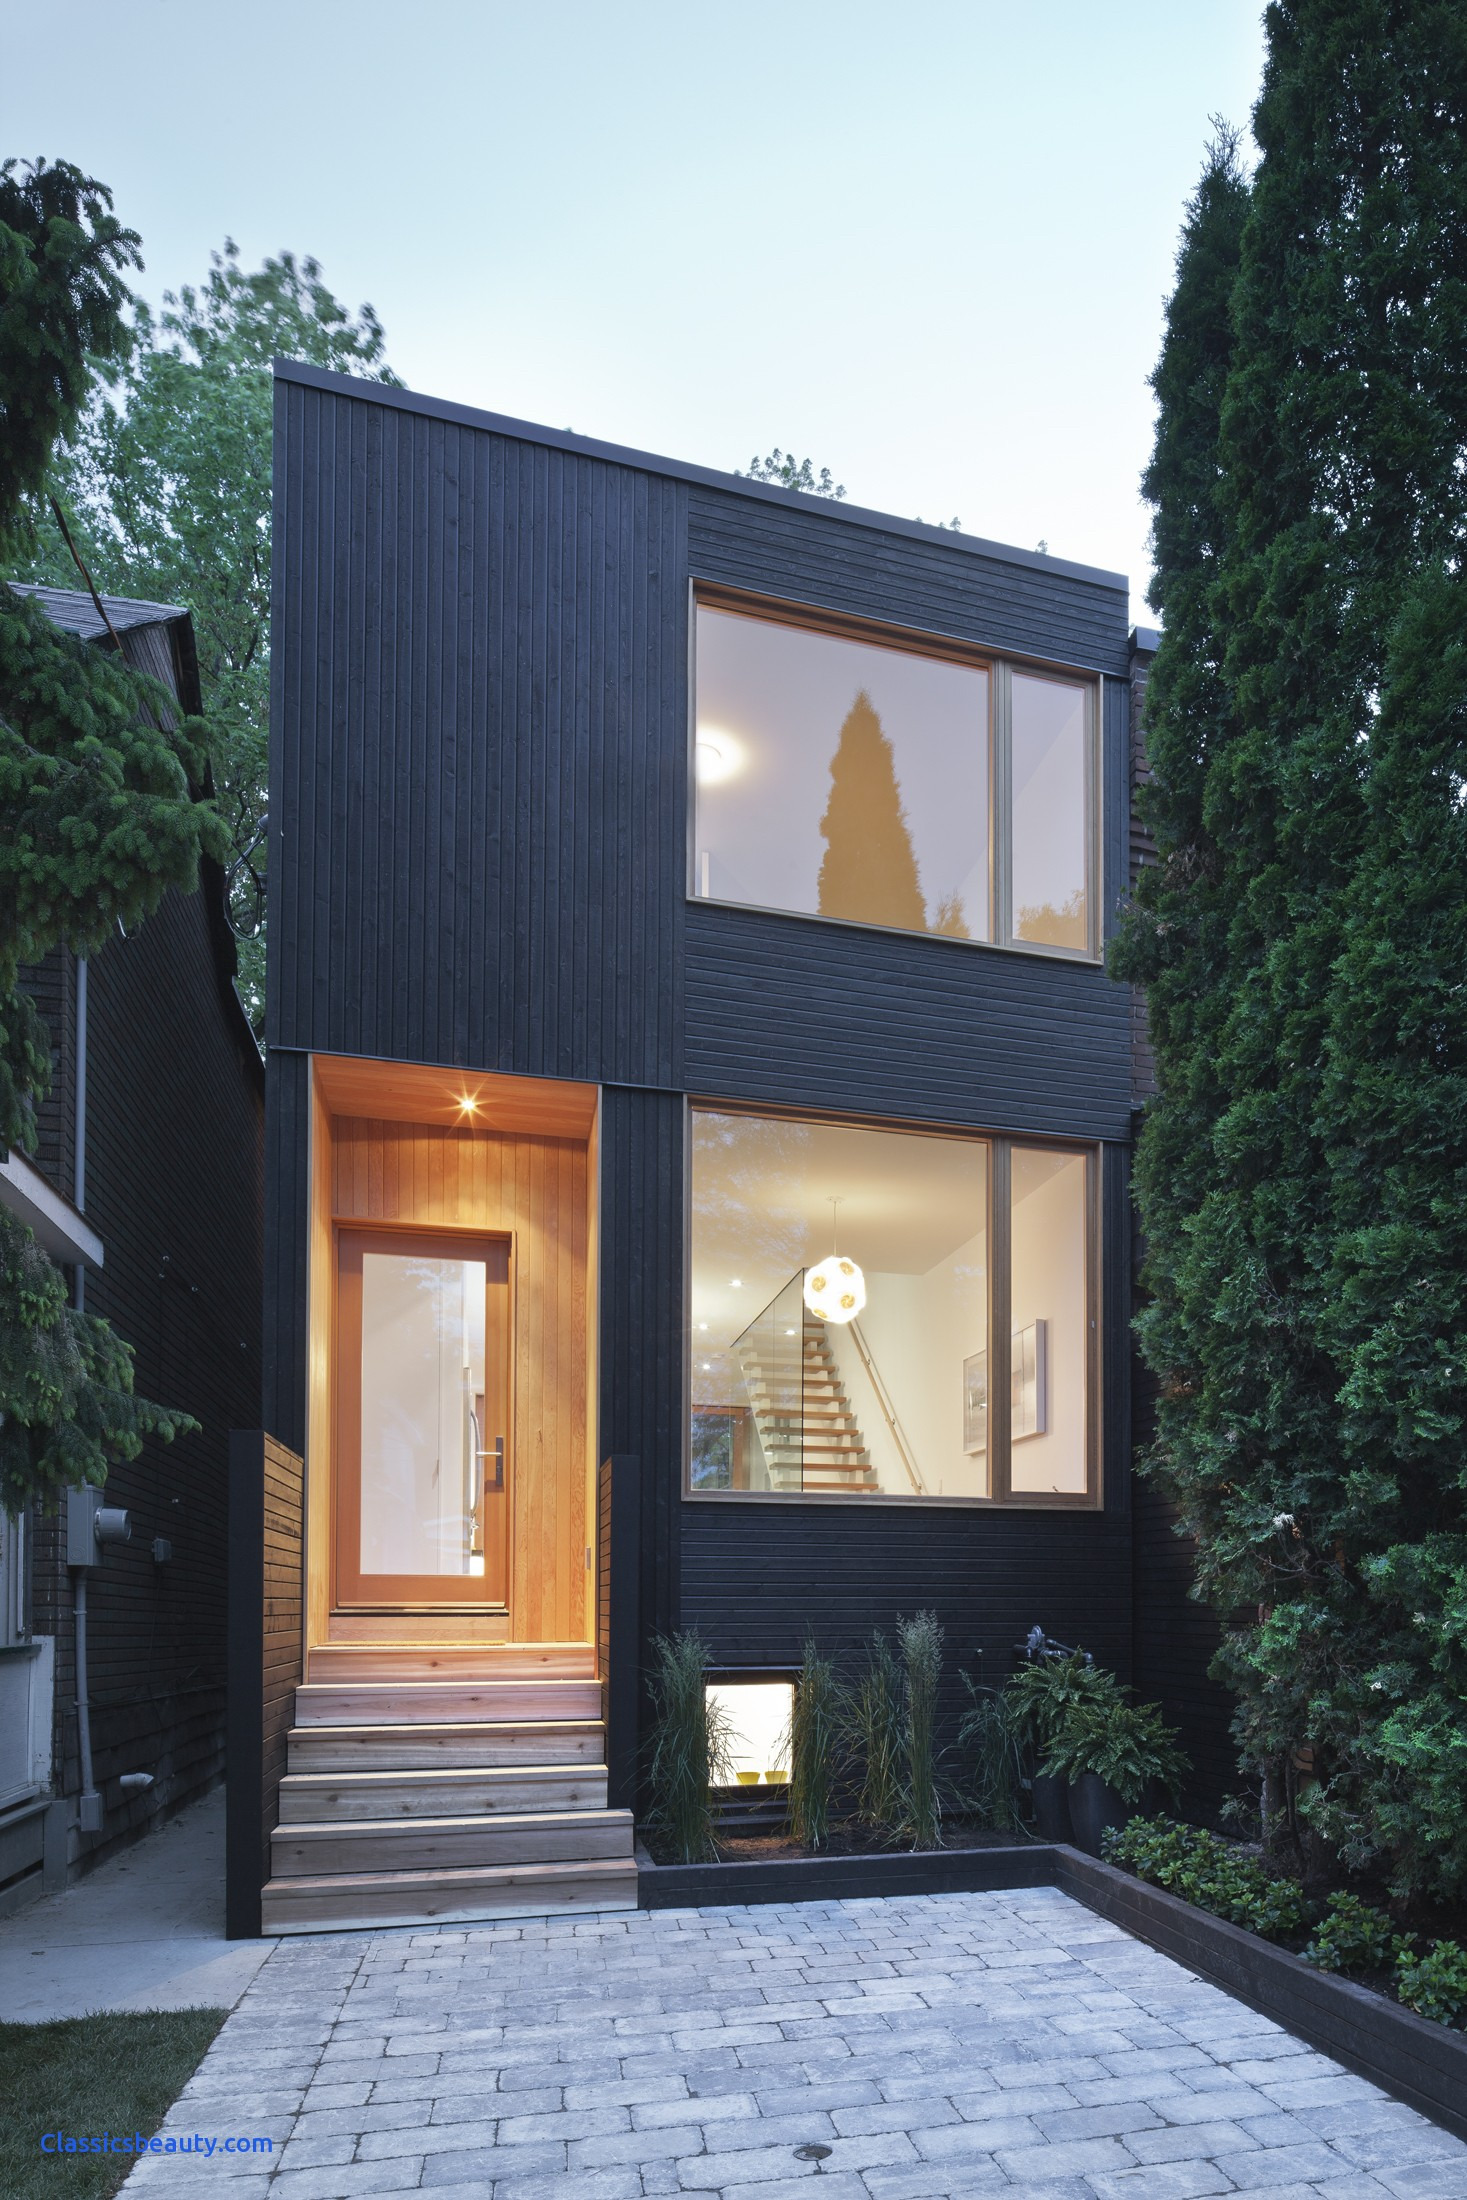 Small Affordable Homes to Build Lovely Small Affordable Homes Elegant top Modular Inexpensive